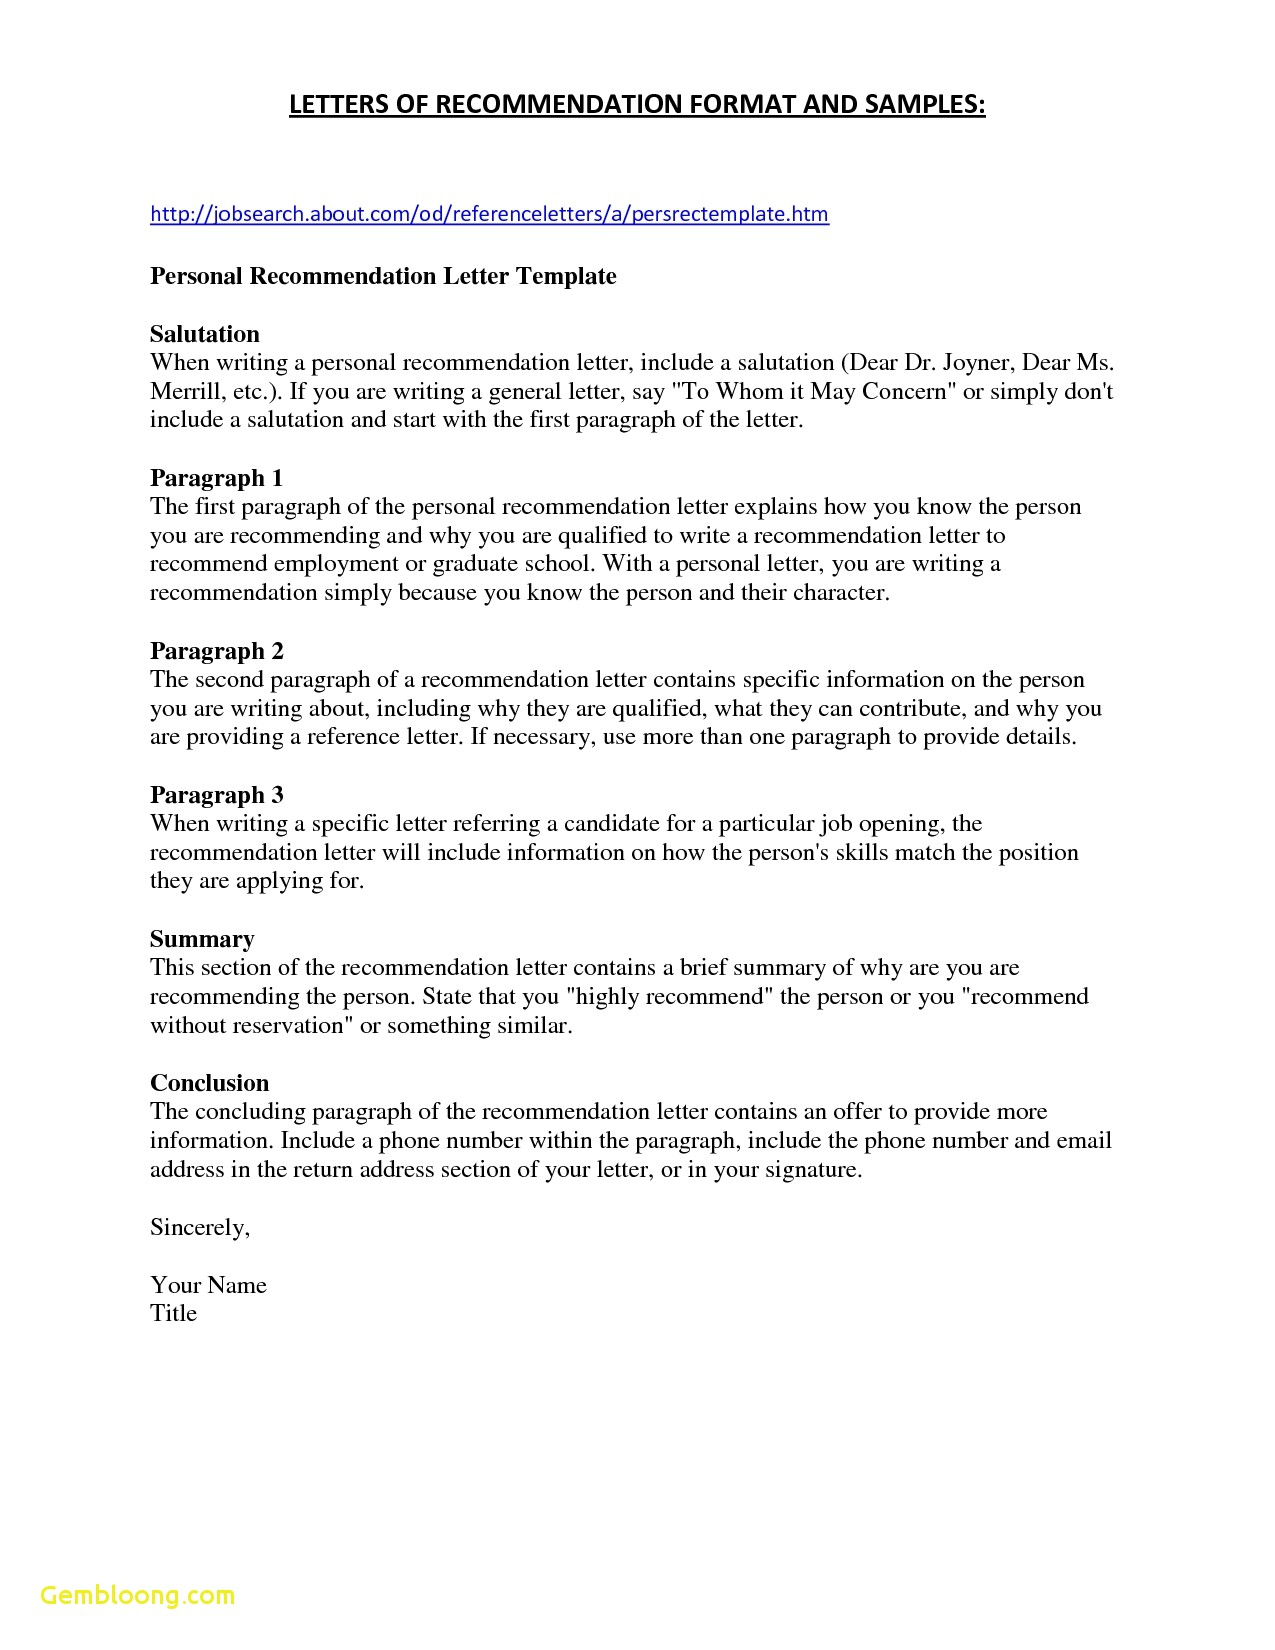 Letter Of Recommendation Template for Student - Tenure Re Mendation Letter Acurnamedia